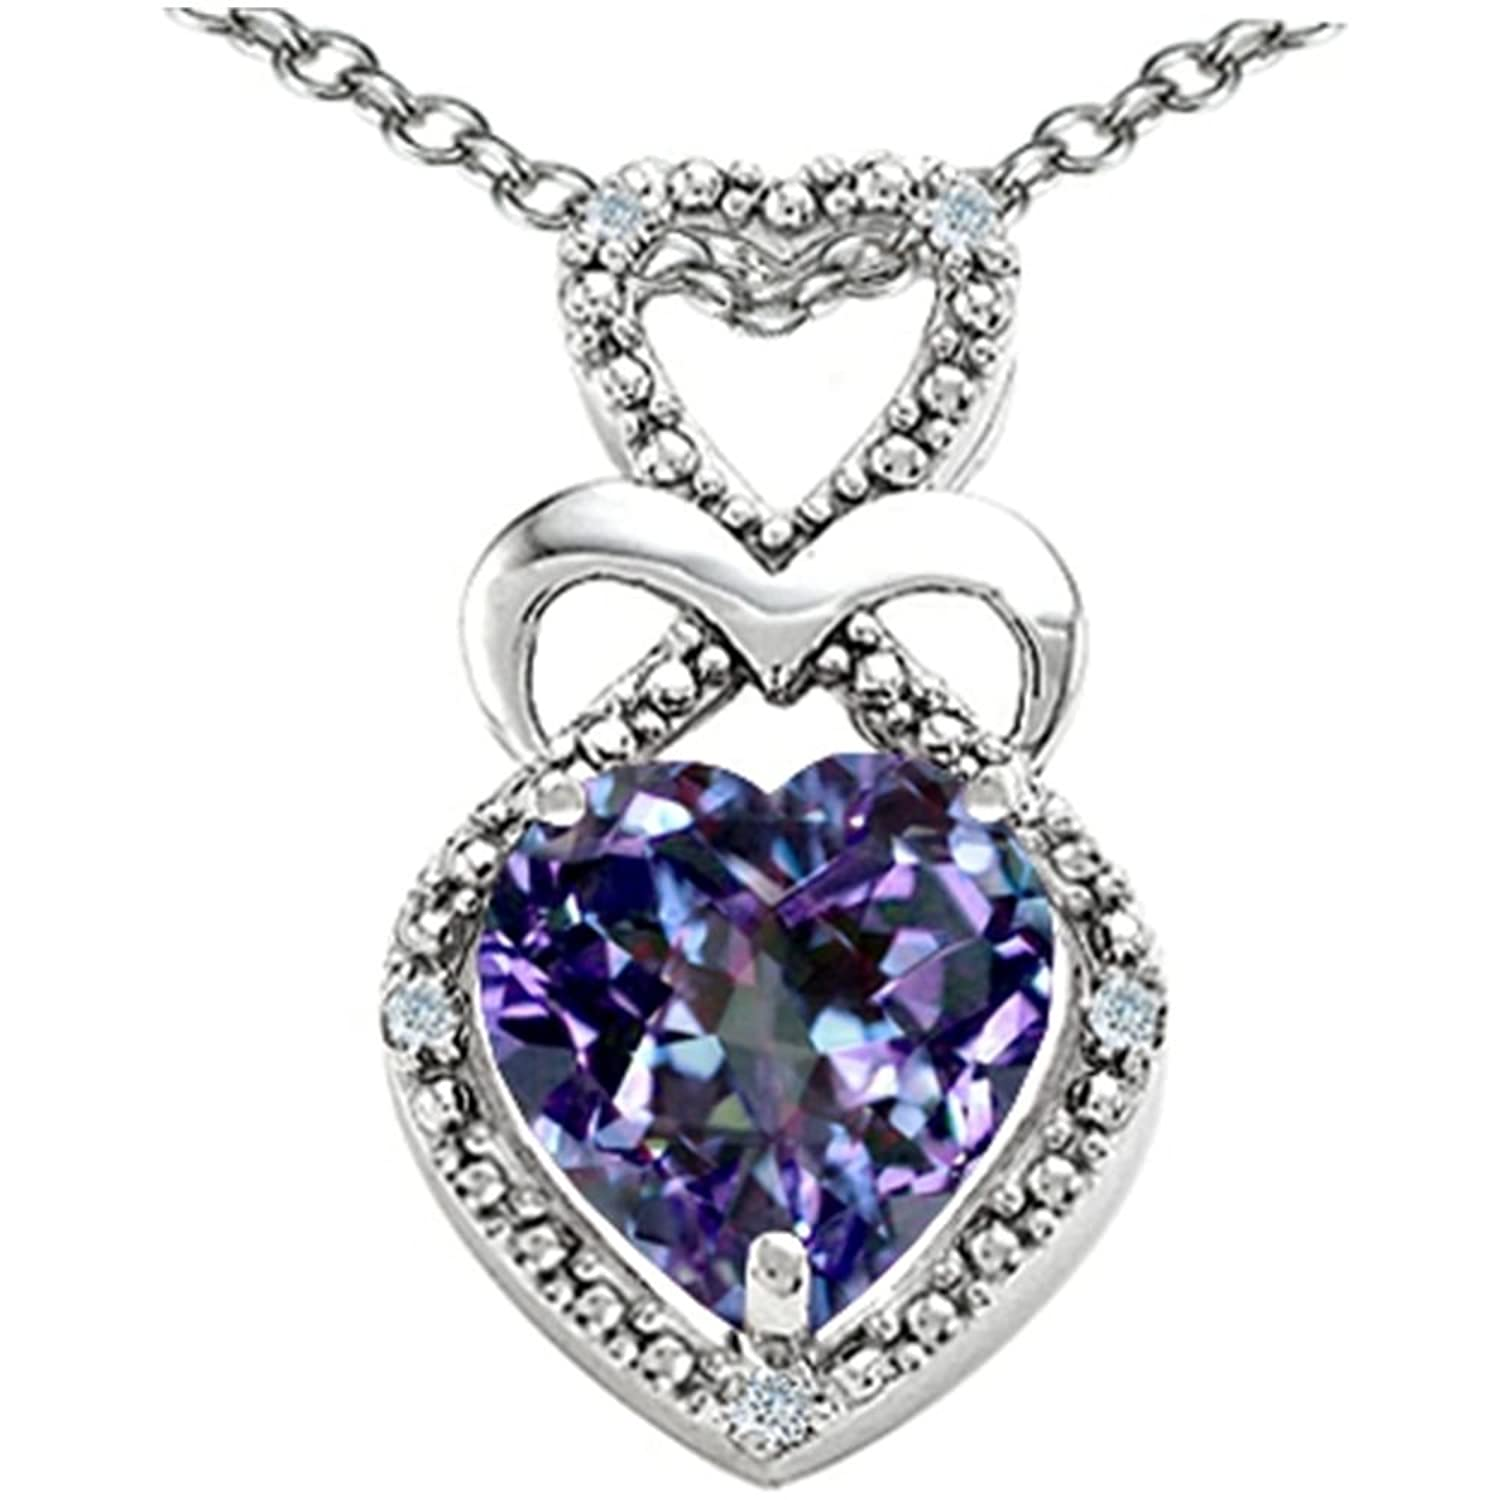 jewelry wedding rjmgtzyzm gemstone bridestory alexandrite jewellery com semarang necklace in